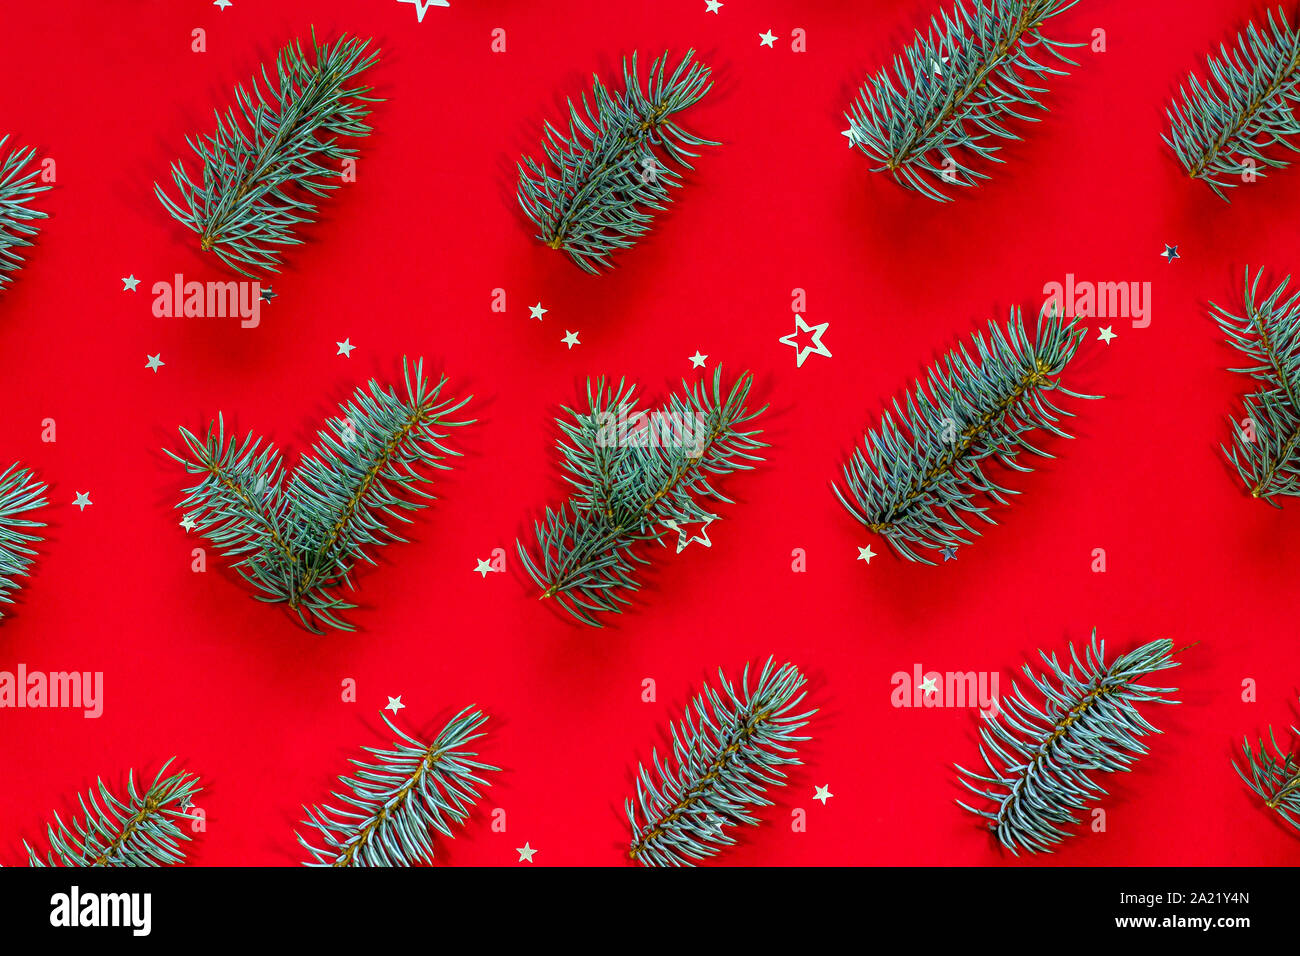 festive pattern made of blue christmas tree branches and silver star shaped confetti on a red background 2A21Y4N